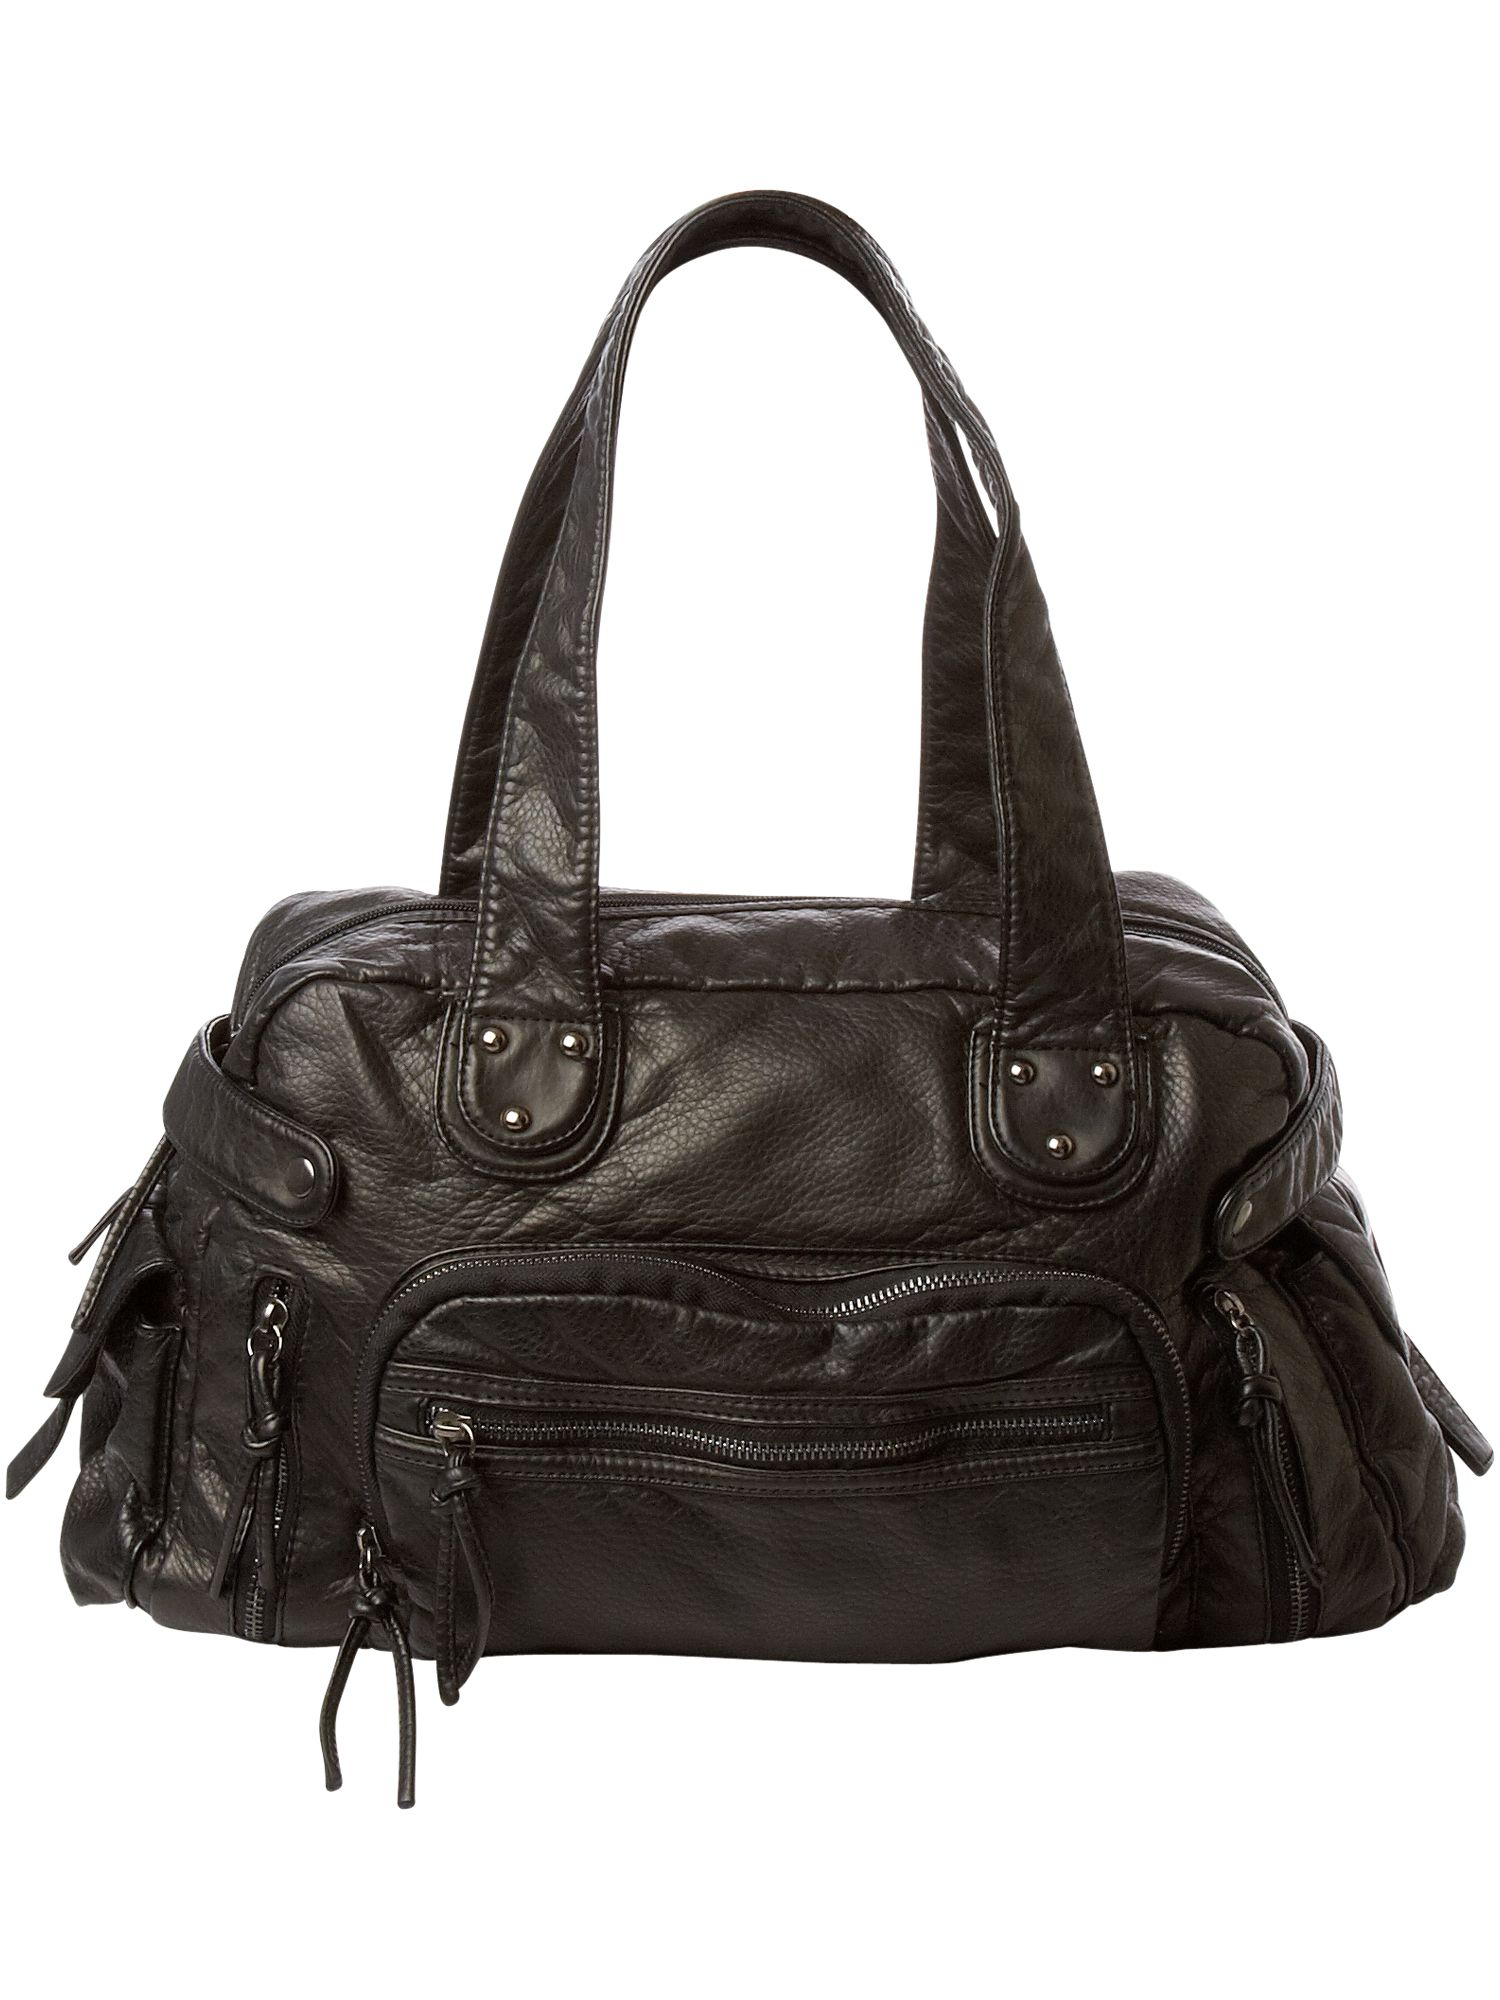 Therapy Washed shoulder bag product image